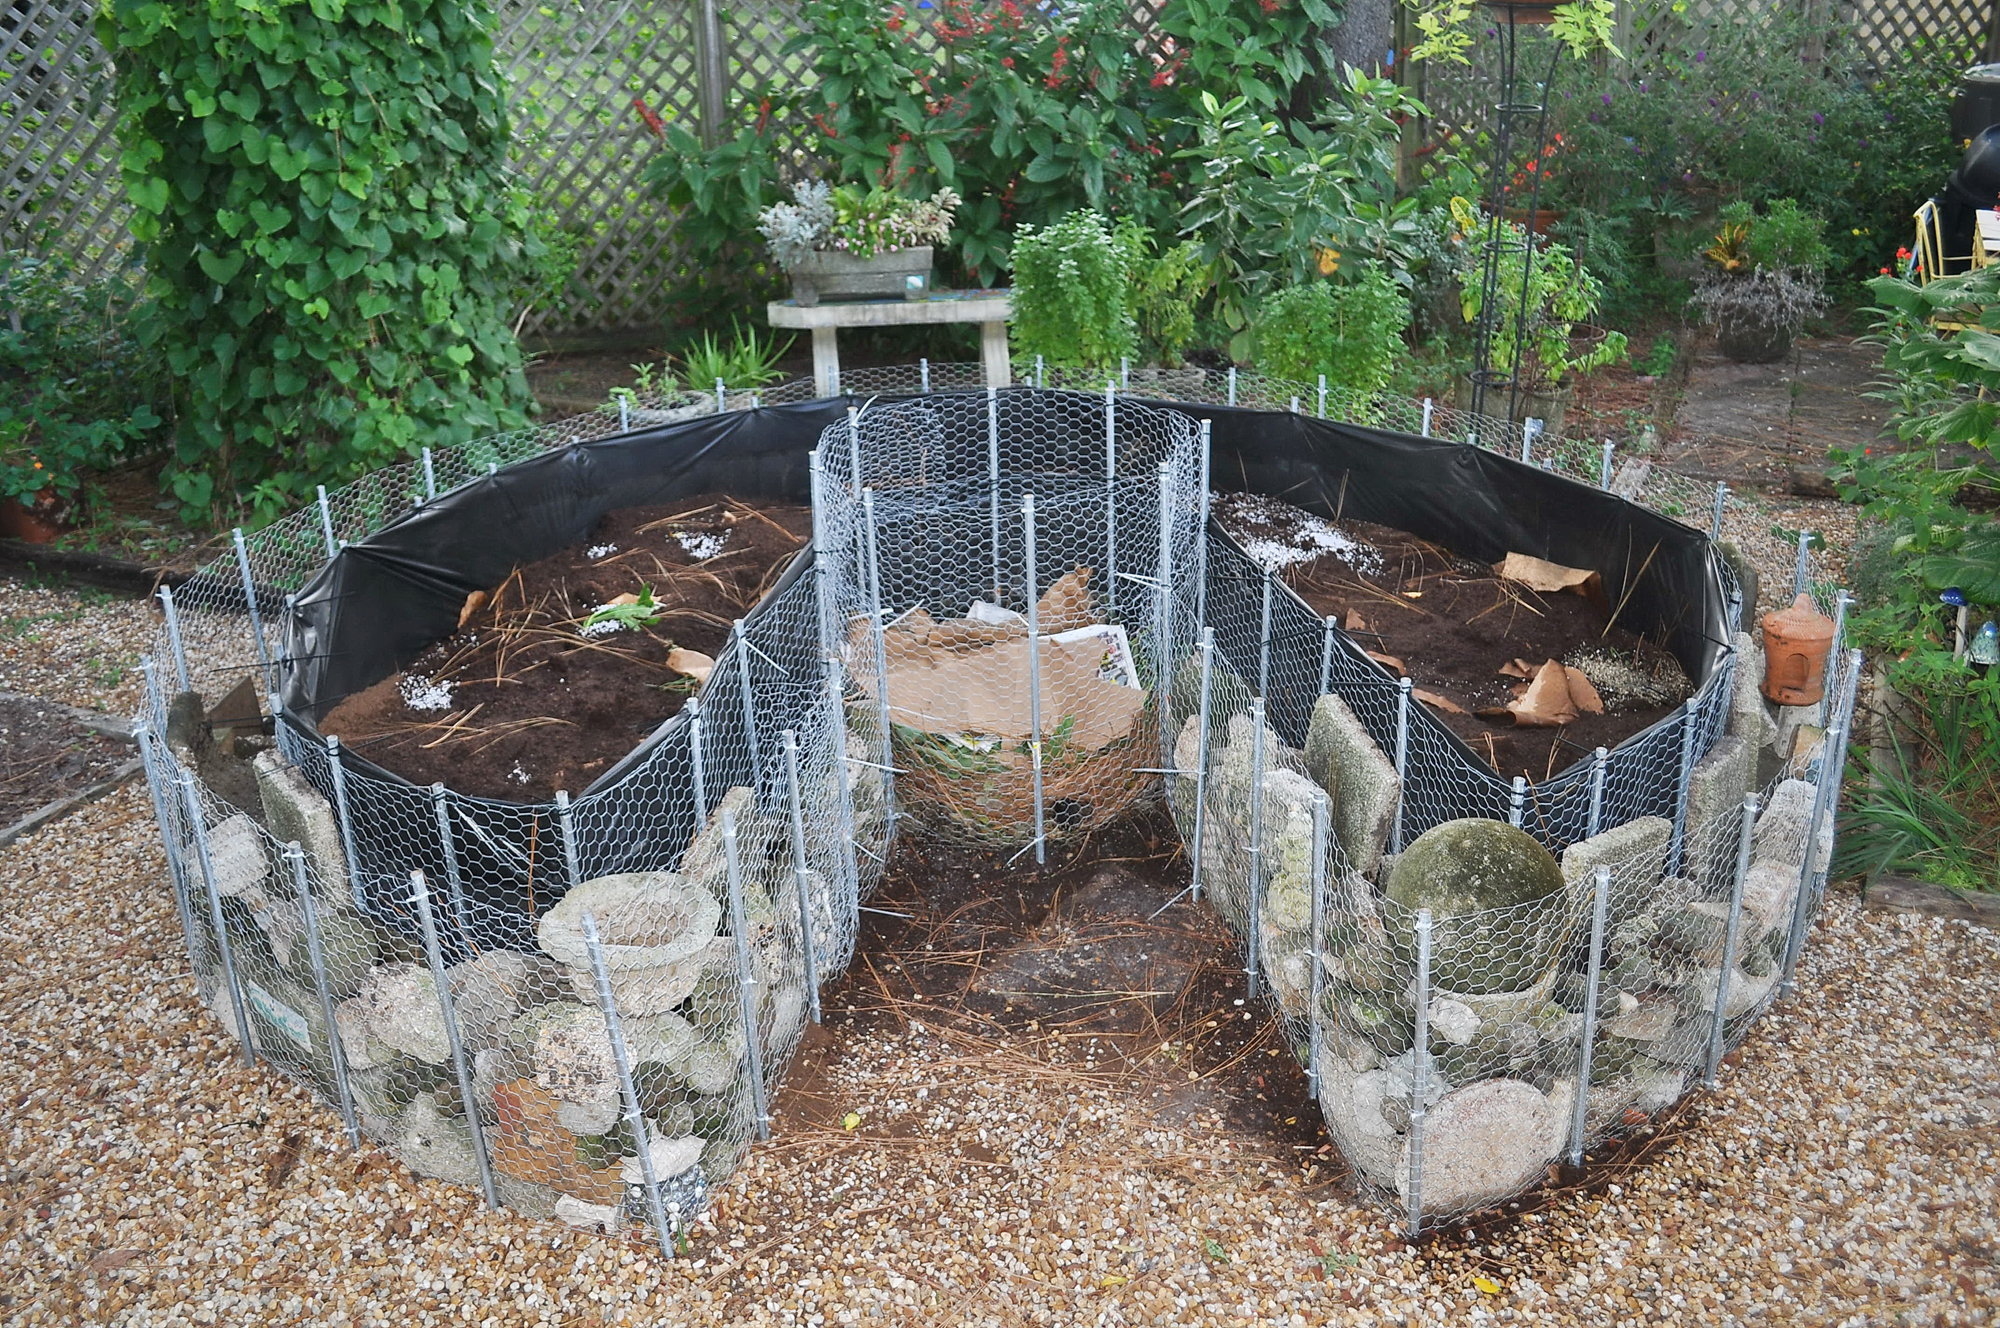 Do It Yourself Home Design: Keyhole Garden Ideas To Make Your Own Keyhole Bed